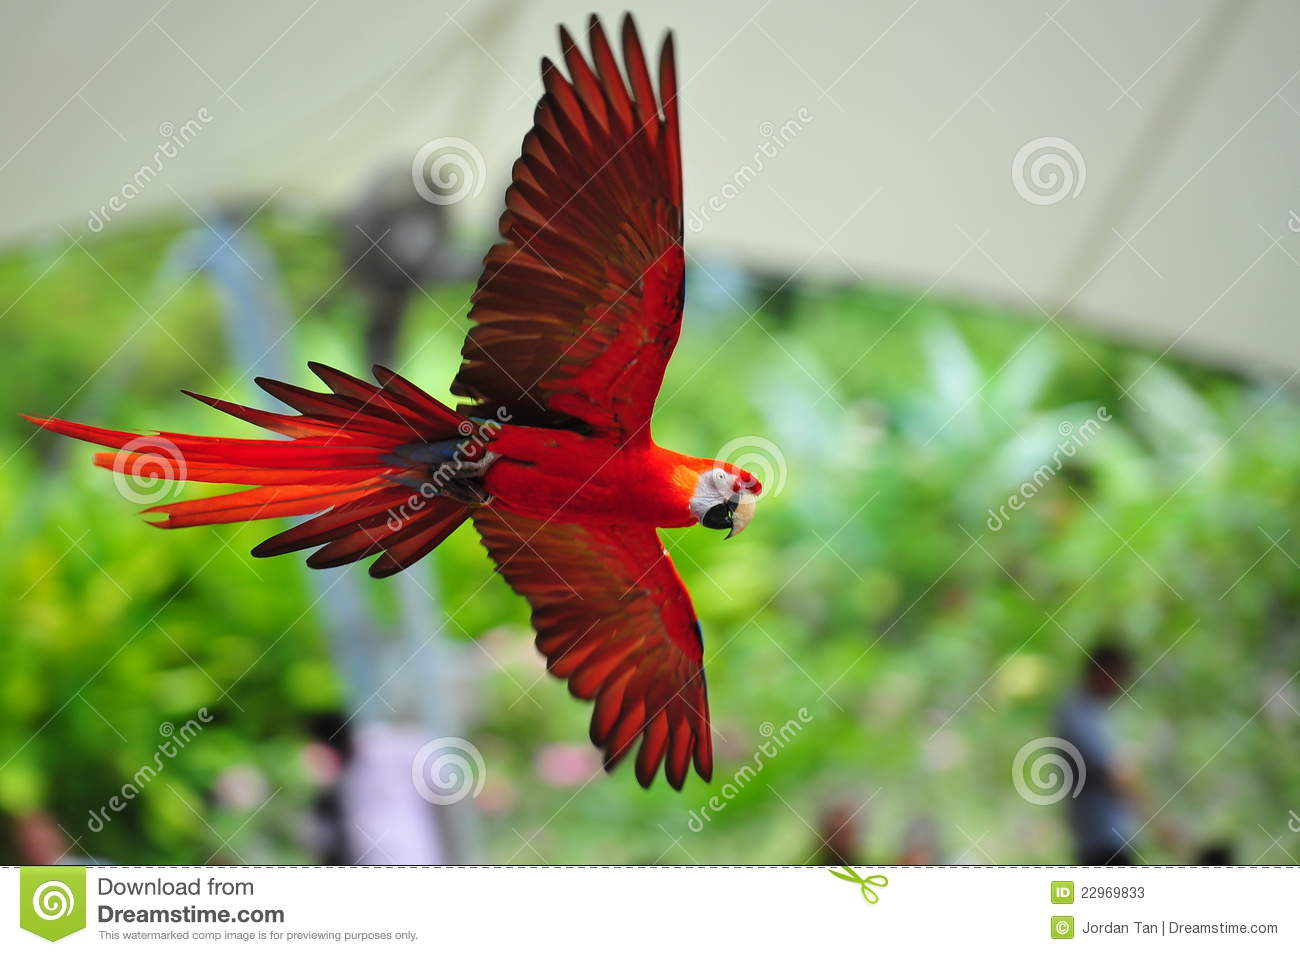 Red Macaw Parrot Flying Scarlet macaw in flight